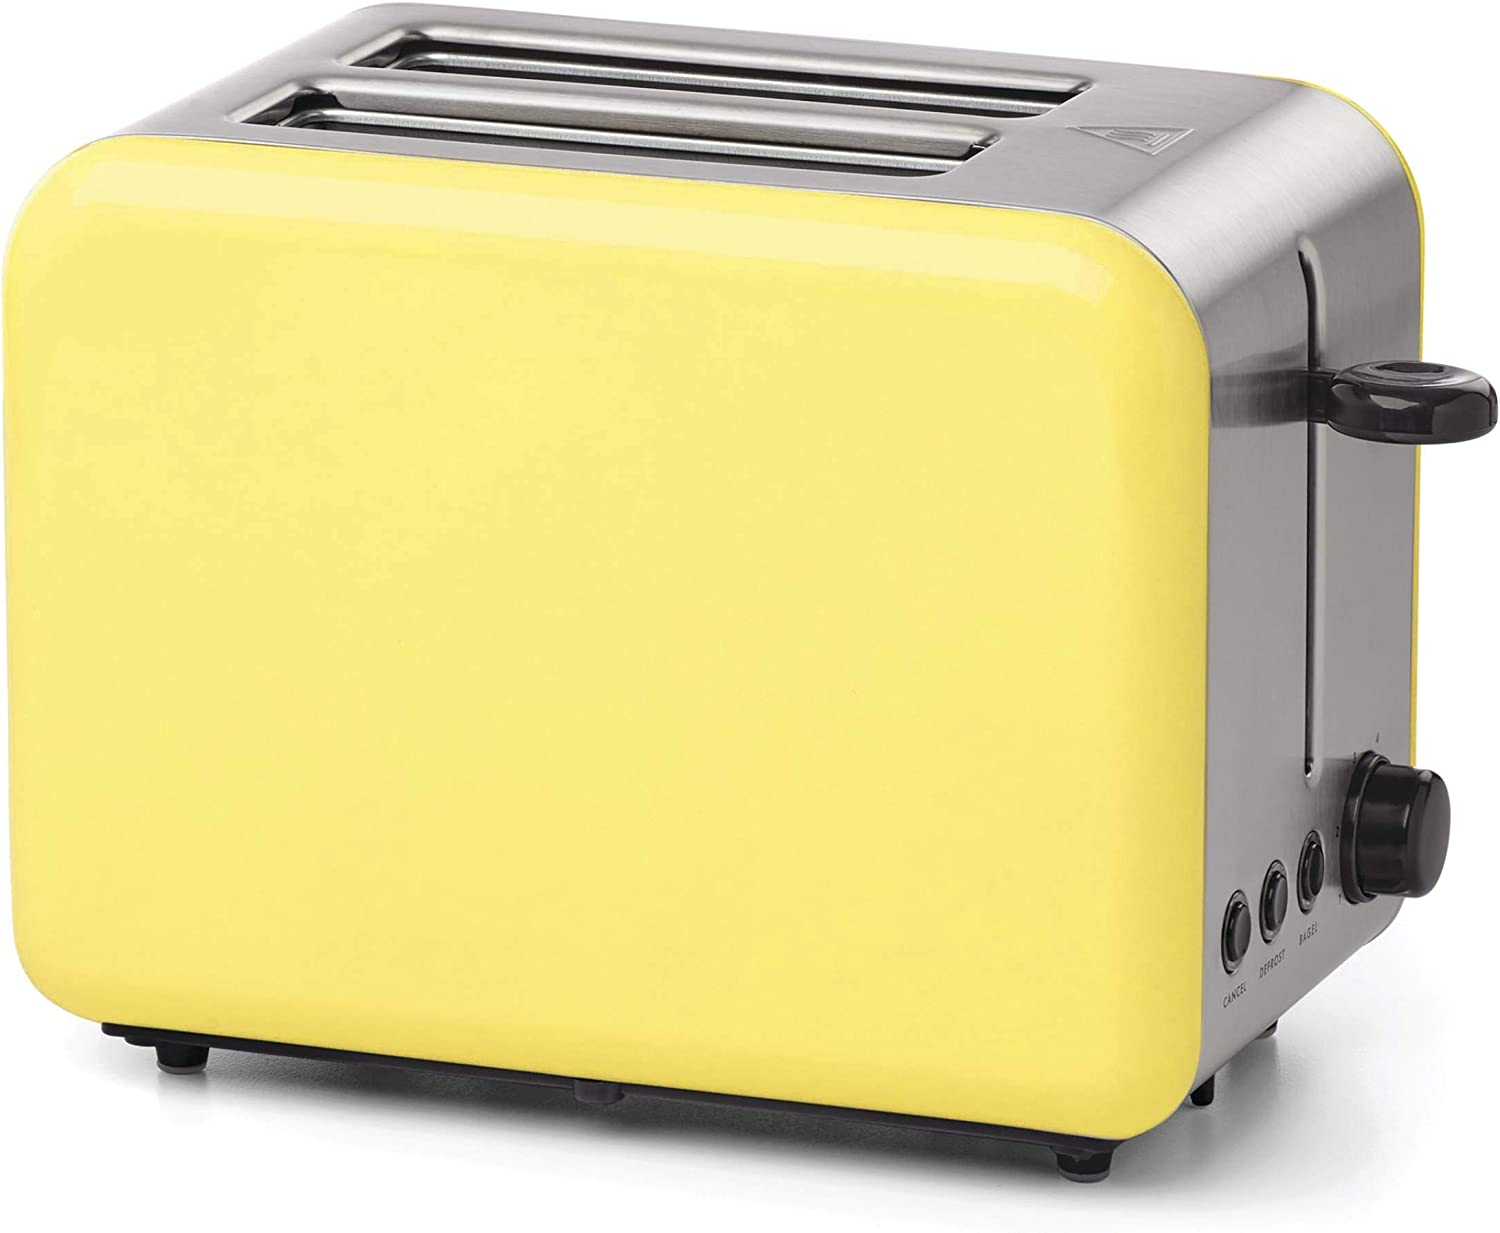 Kate Spade New York 888394 Toaster, Yellow